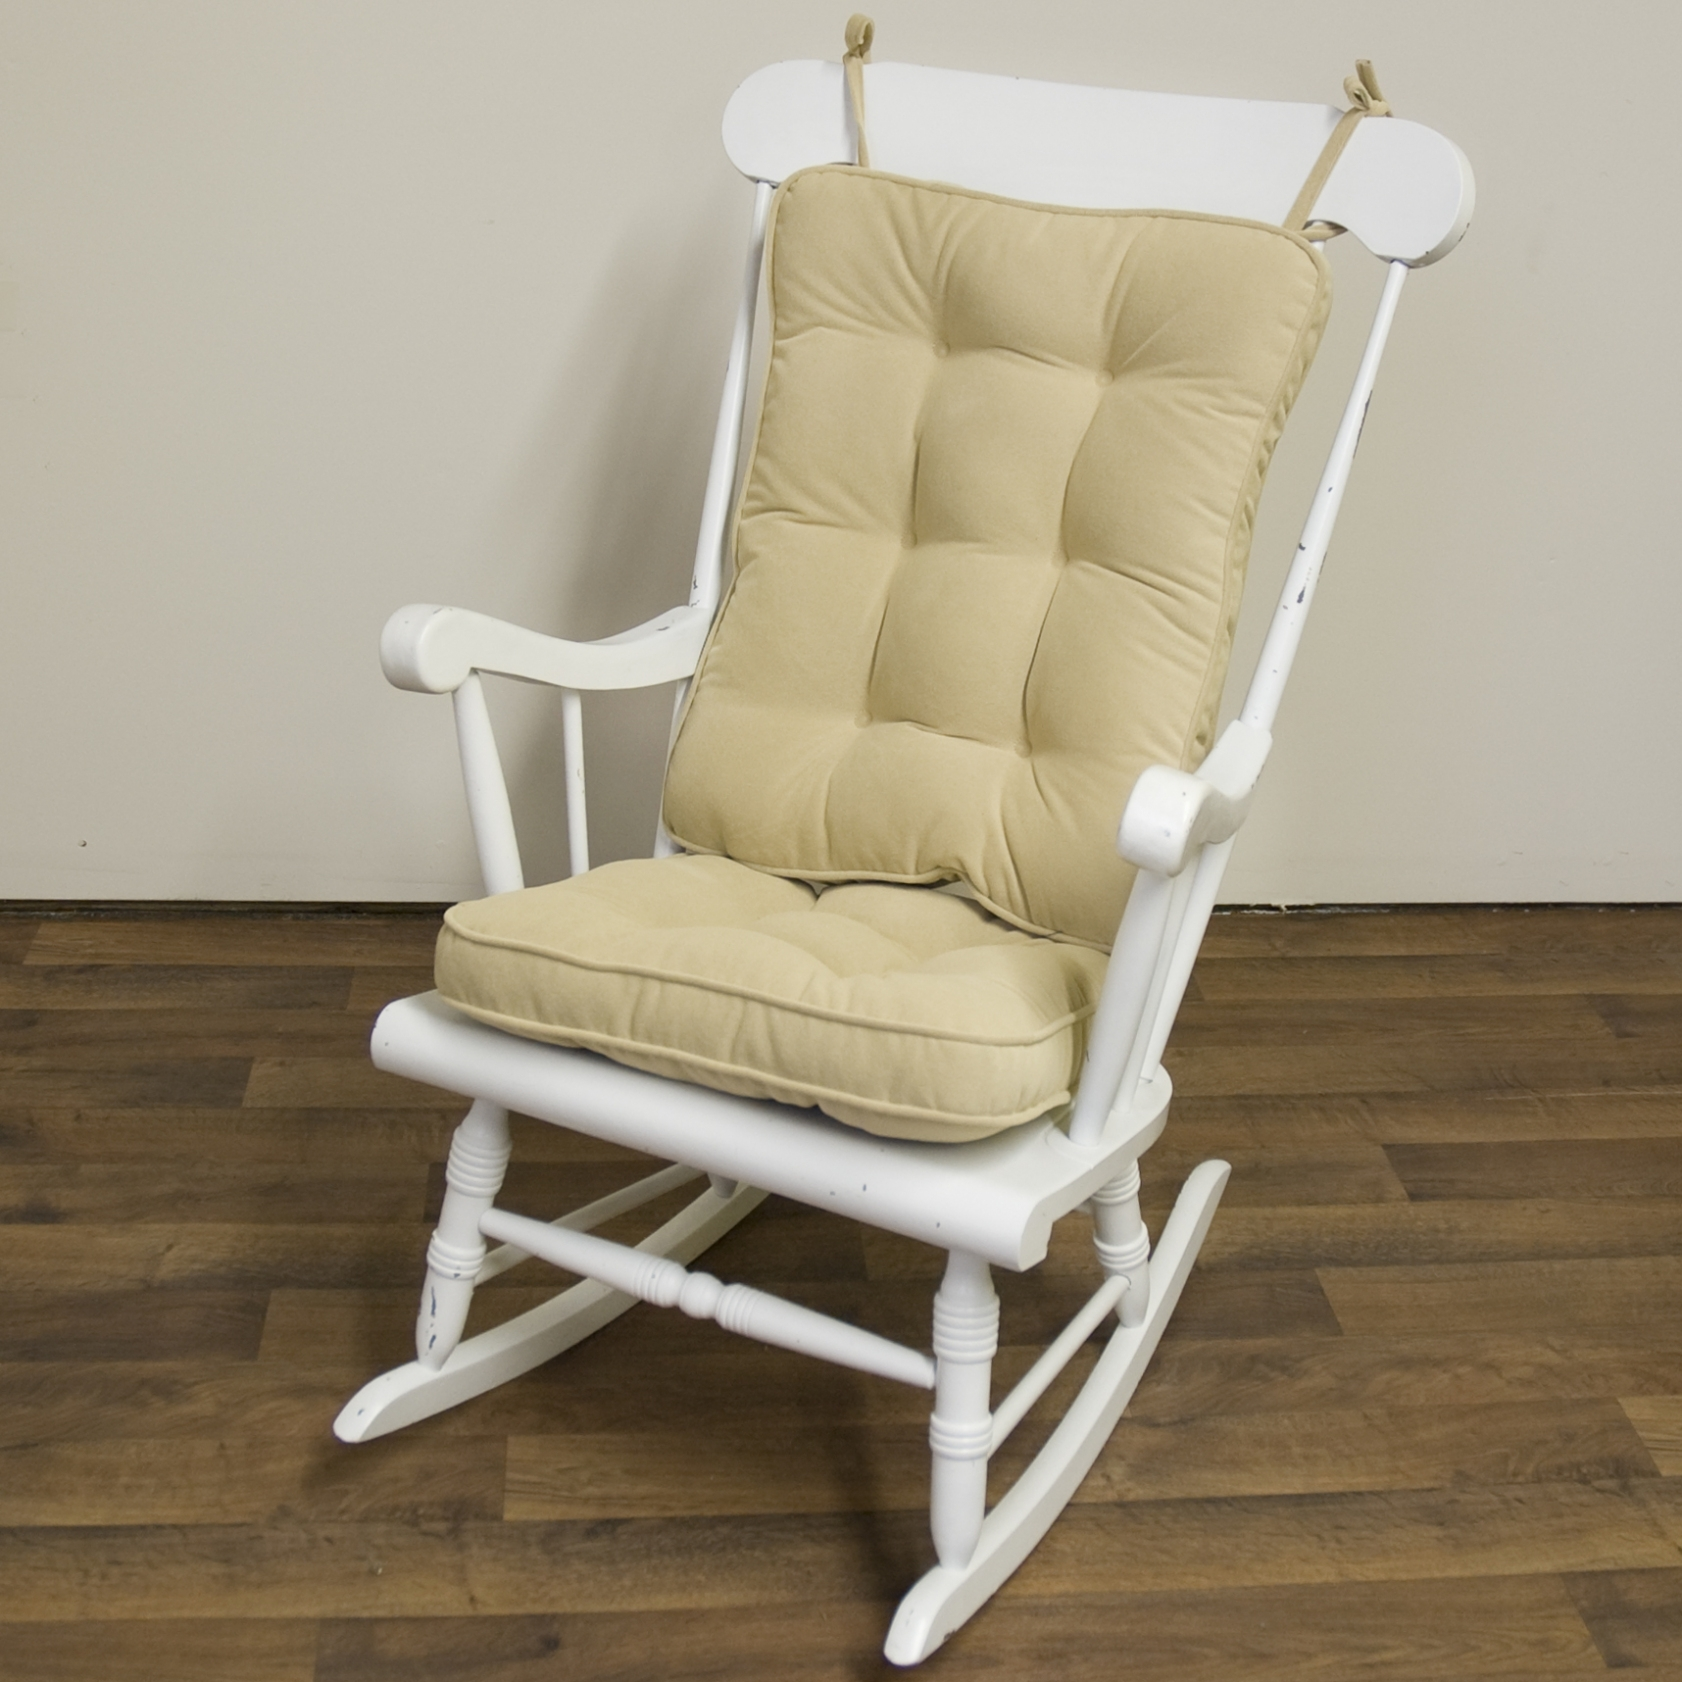 Chairs: Sumptuous Rocking Chairs Lowes Chair Design Outdoor With Regard To Lowes Rocking Chairs (#1 of 15)